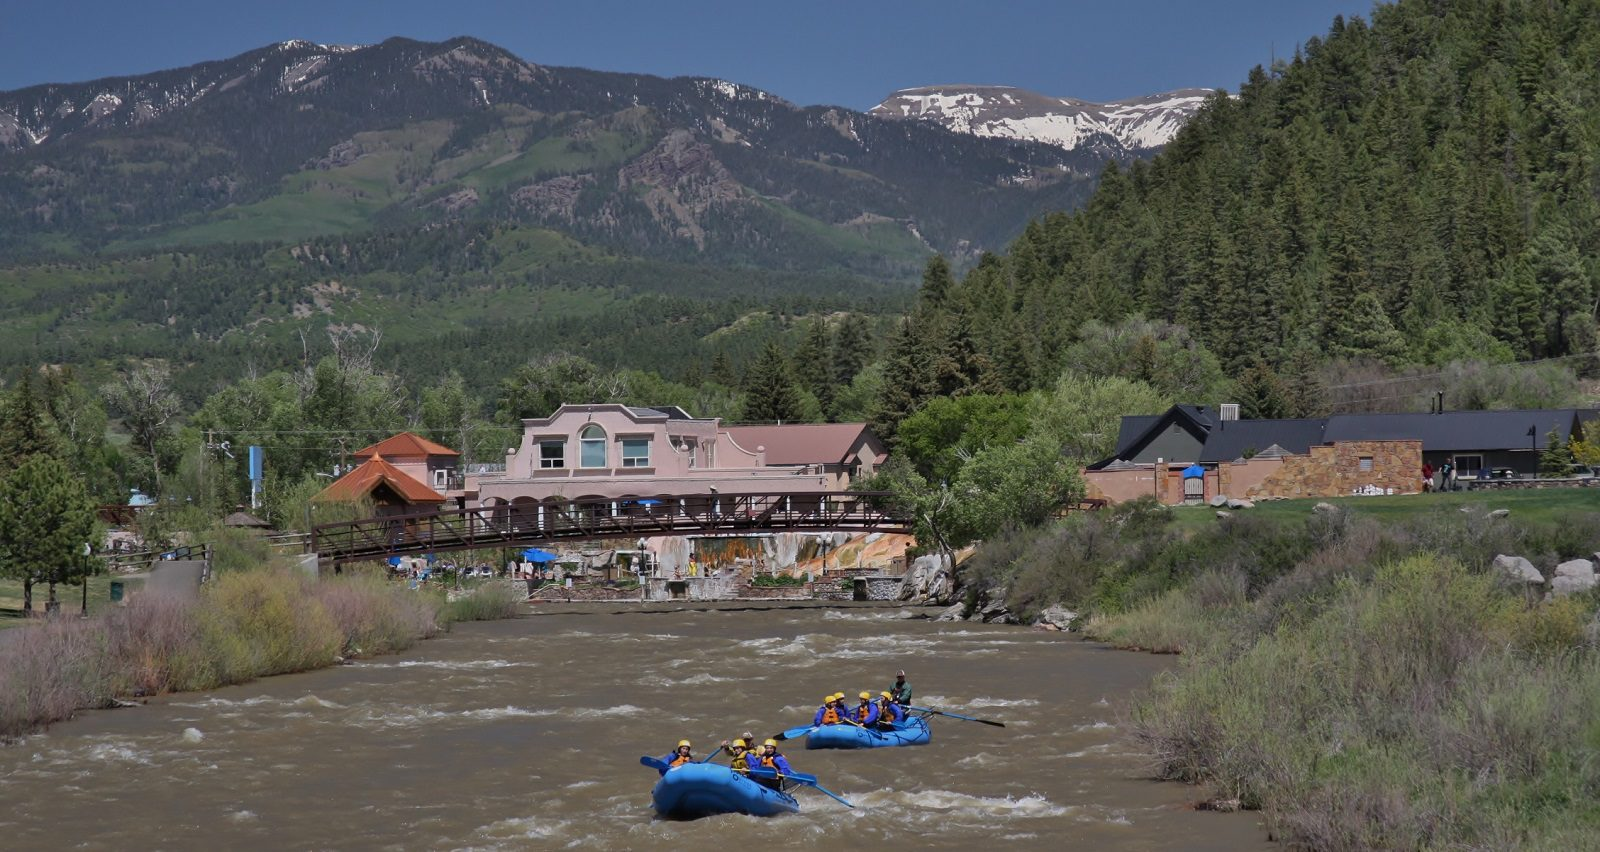 The San Juan River provides residents and visitors with year-round enjoyment